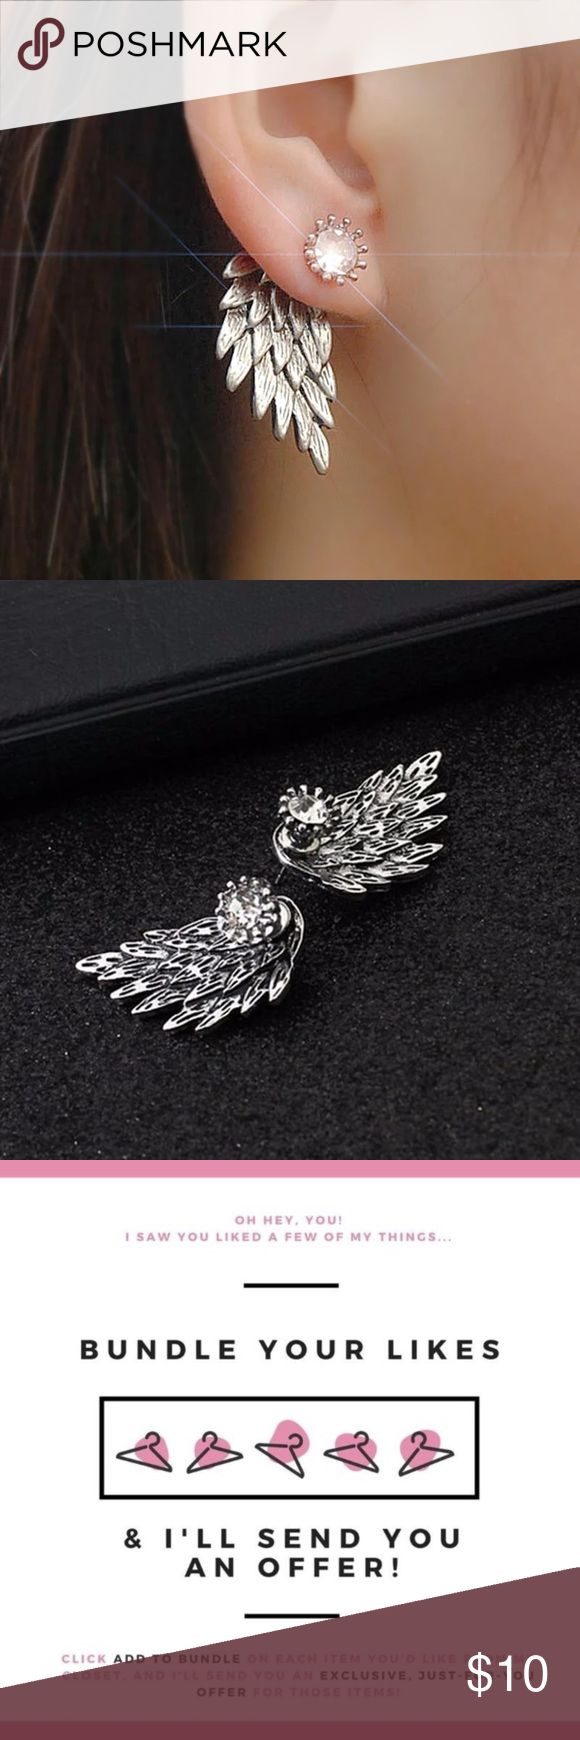 "New🎉 Silver Angel Wings Earrings Save more when you bundle just ""add to bundle"" and I'll send u a private offer. COLOR: silver    Brand new ✅ ✨Boutique Item✨ Not accepting OFFERS on INDIVIDUAL ITEMS ❌ No trades ❌ No drama zone❌ No holds❌   💥🔅Prices are FIRM🔅💥    If u have any questions plz ask before purchase is made Jewelry Earrings"